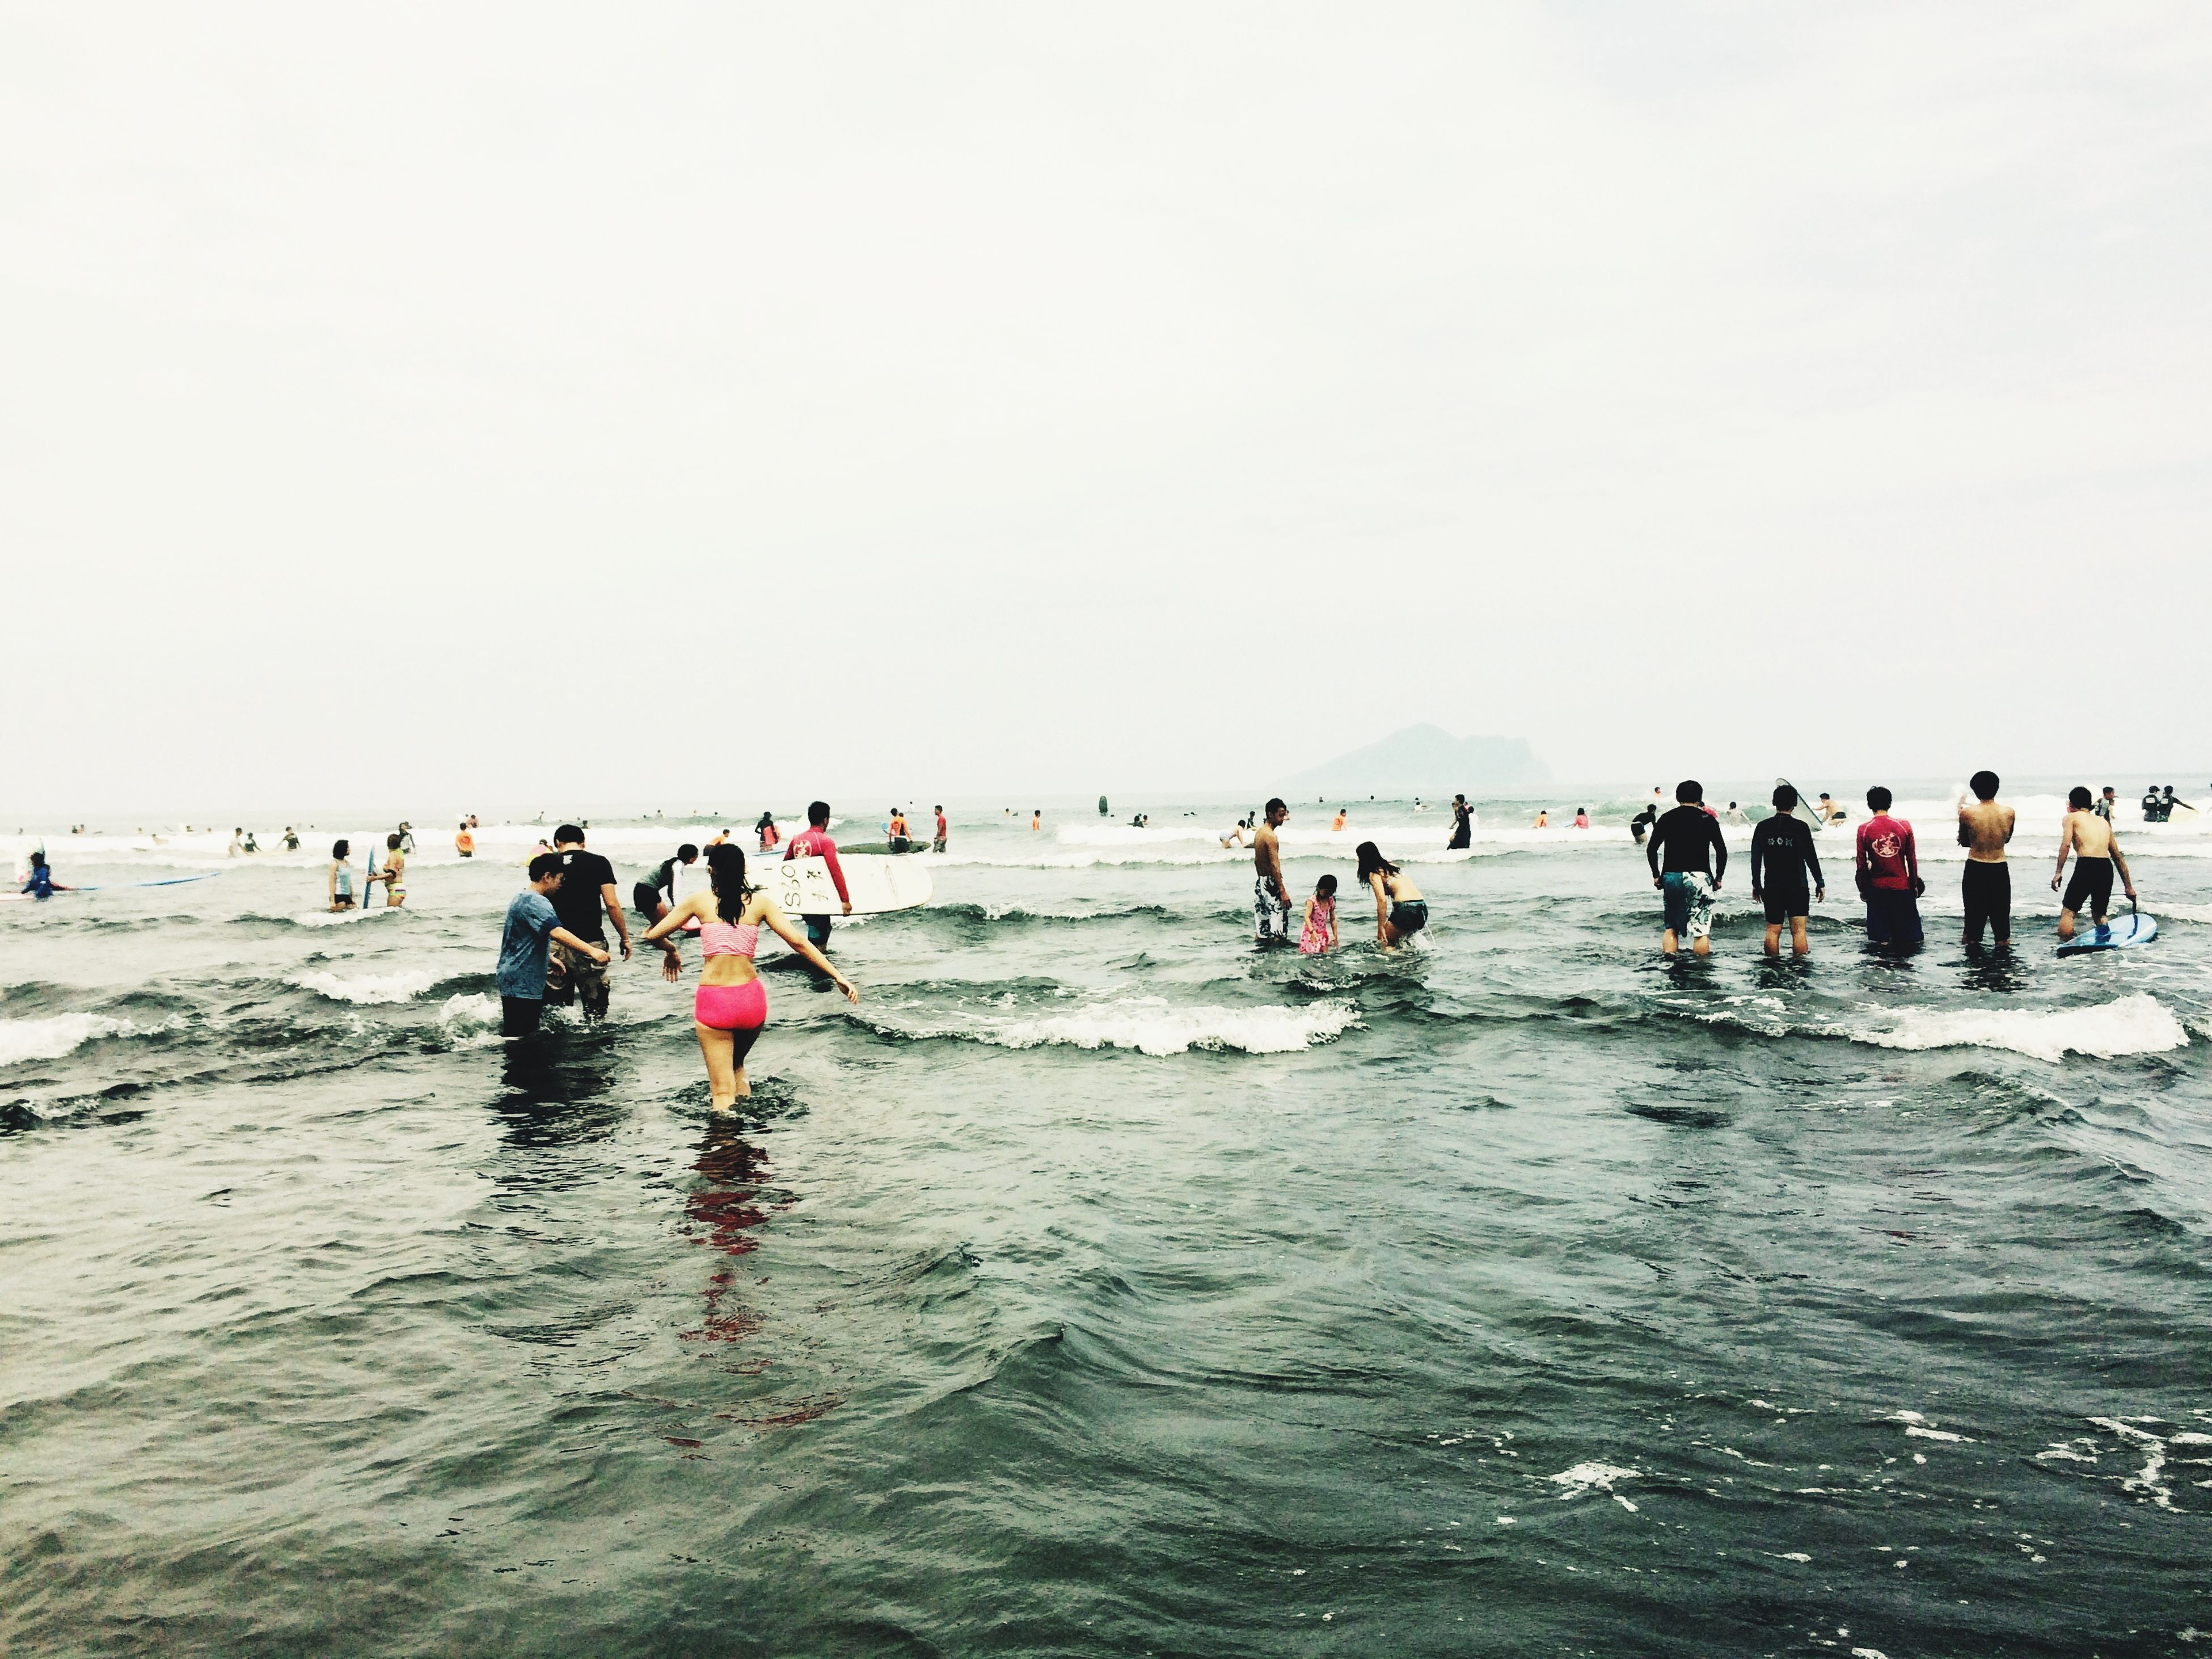 water, large group of people, sea, leisure activity, beach, lifestyles, vacations, clear sky, enjoyment, mixed age range, copy space, men, horizon over water, person, waterfront, shore, fun, tourist, enjoying